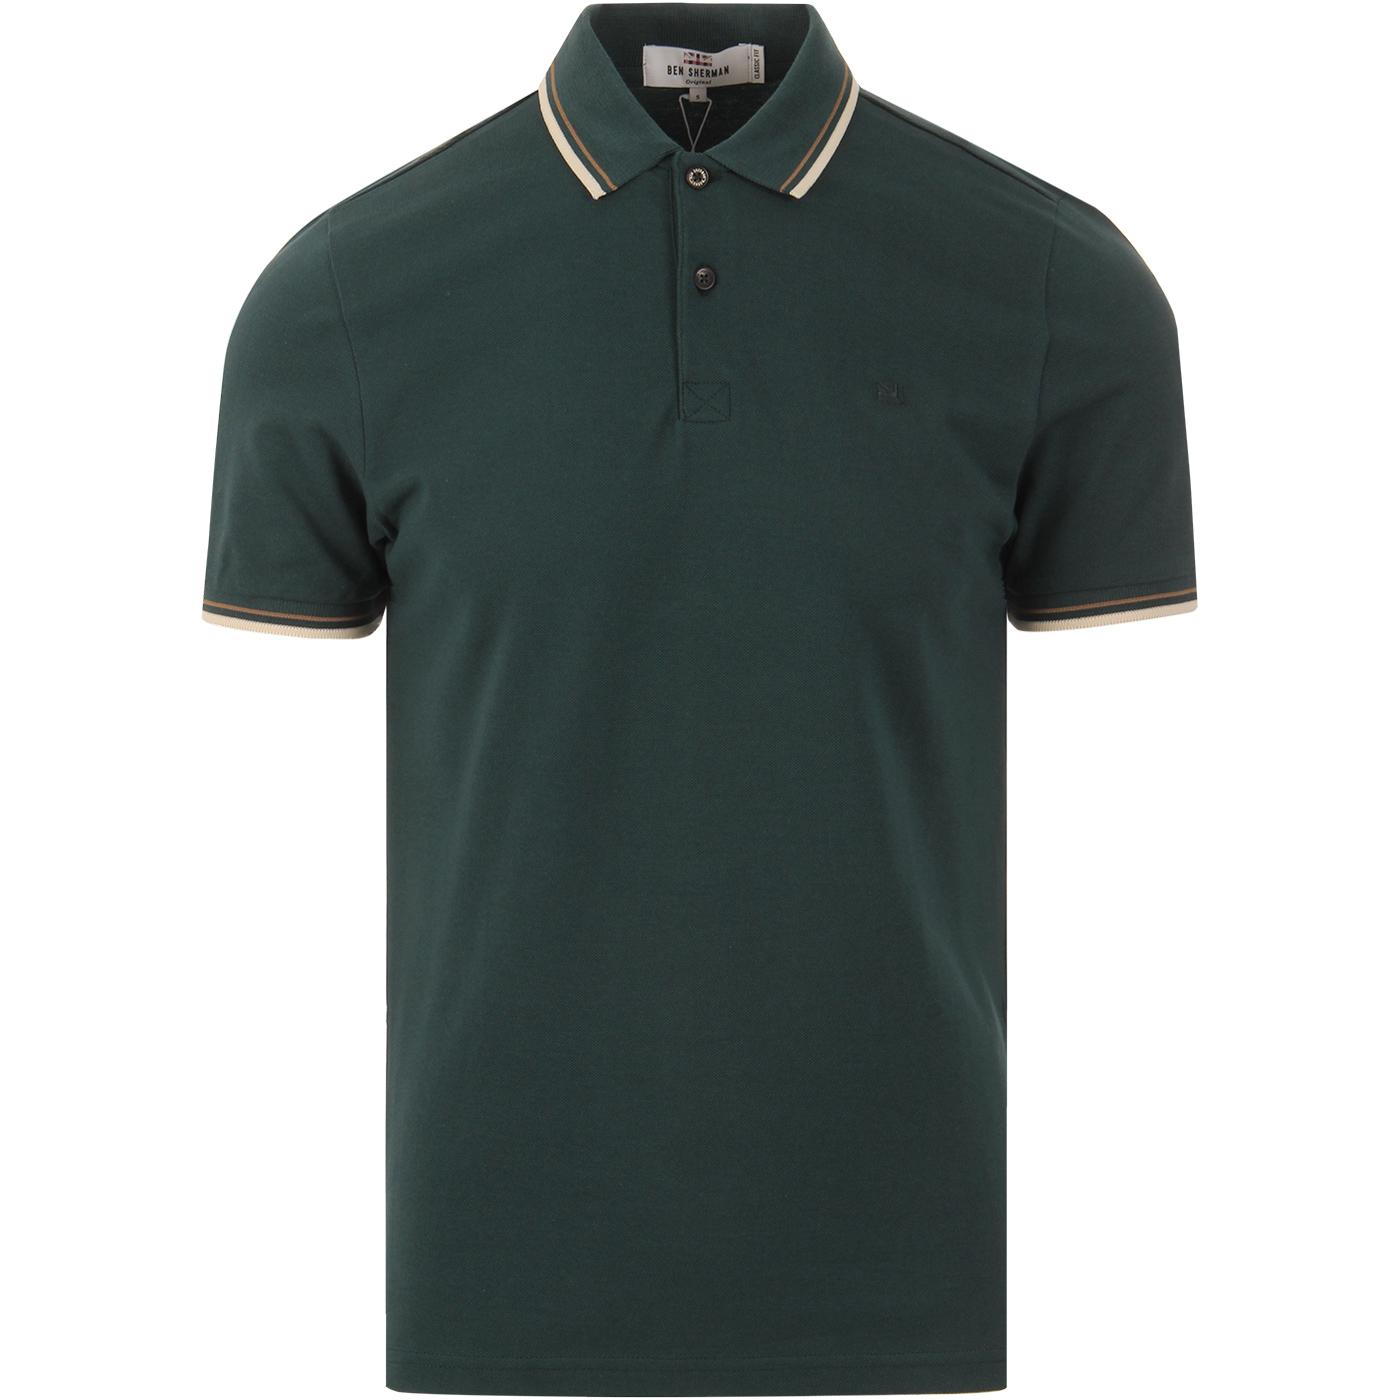 Romford BEN SHERMAN 60's Retro Mod Tipped Polo TG